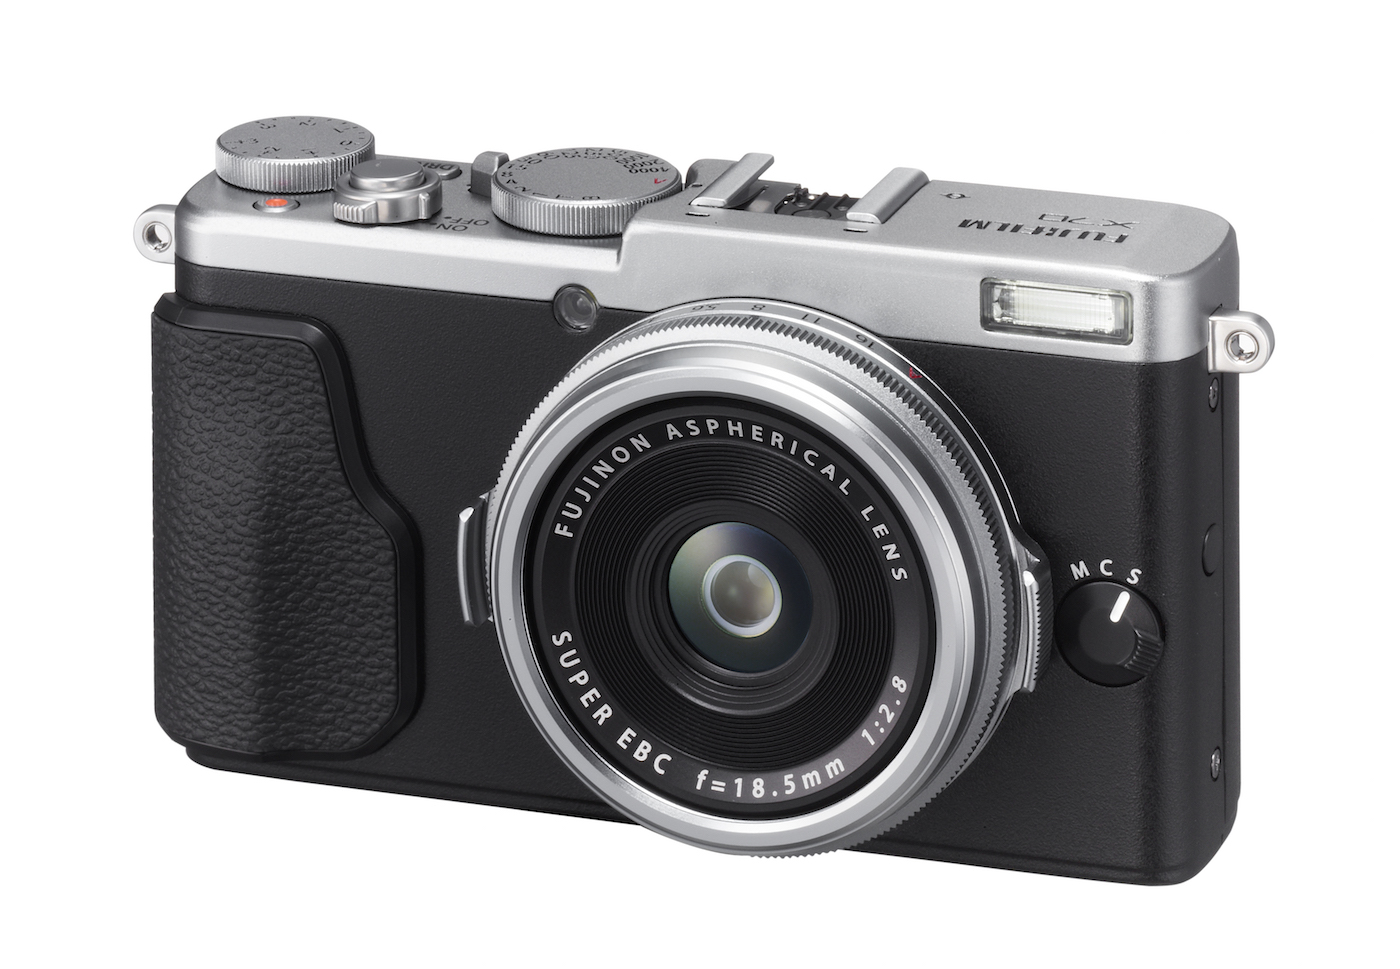 Fujifilm X70 and X-E2s Firmware Updates Released